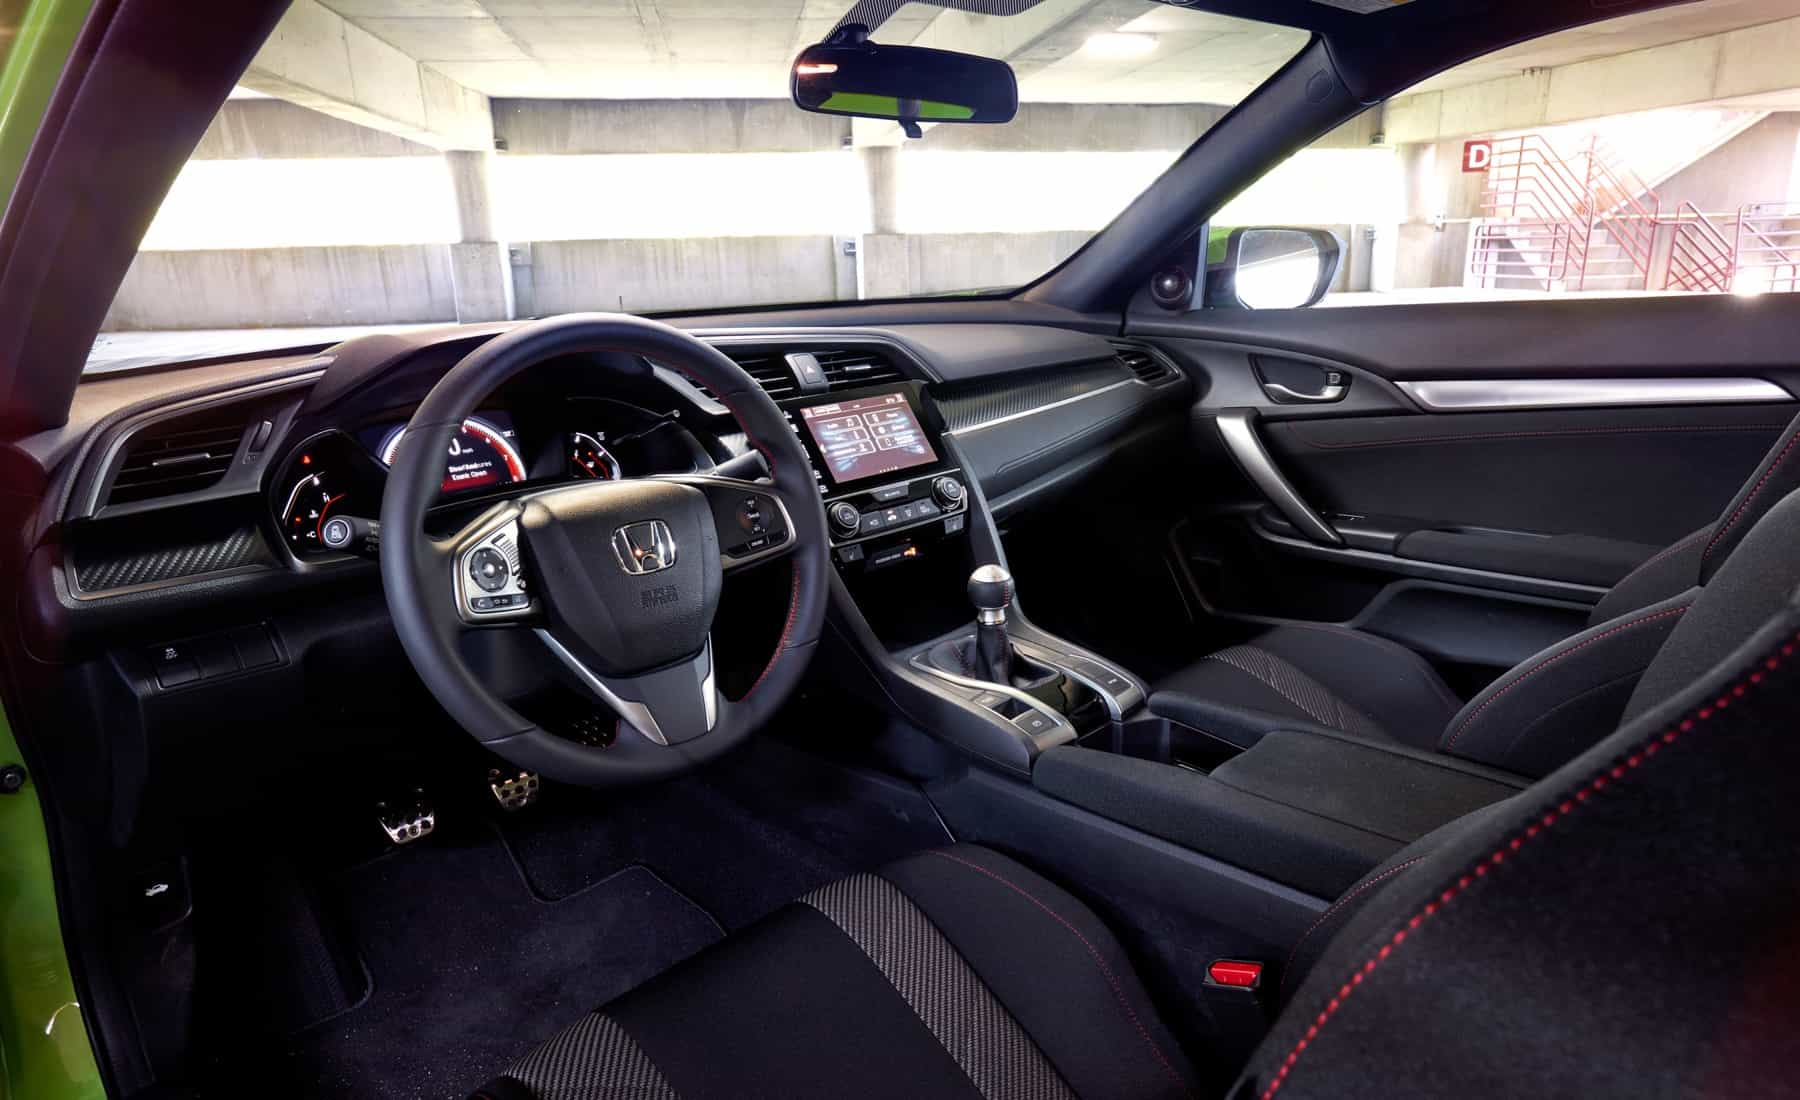 2017 Honda Civic Si Coupe Interior Cockpit And Dashboard (Photo 15 of 19)